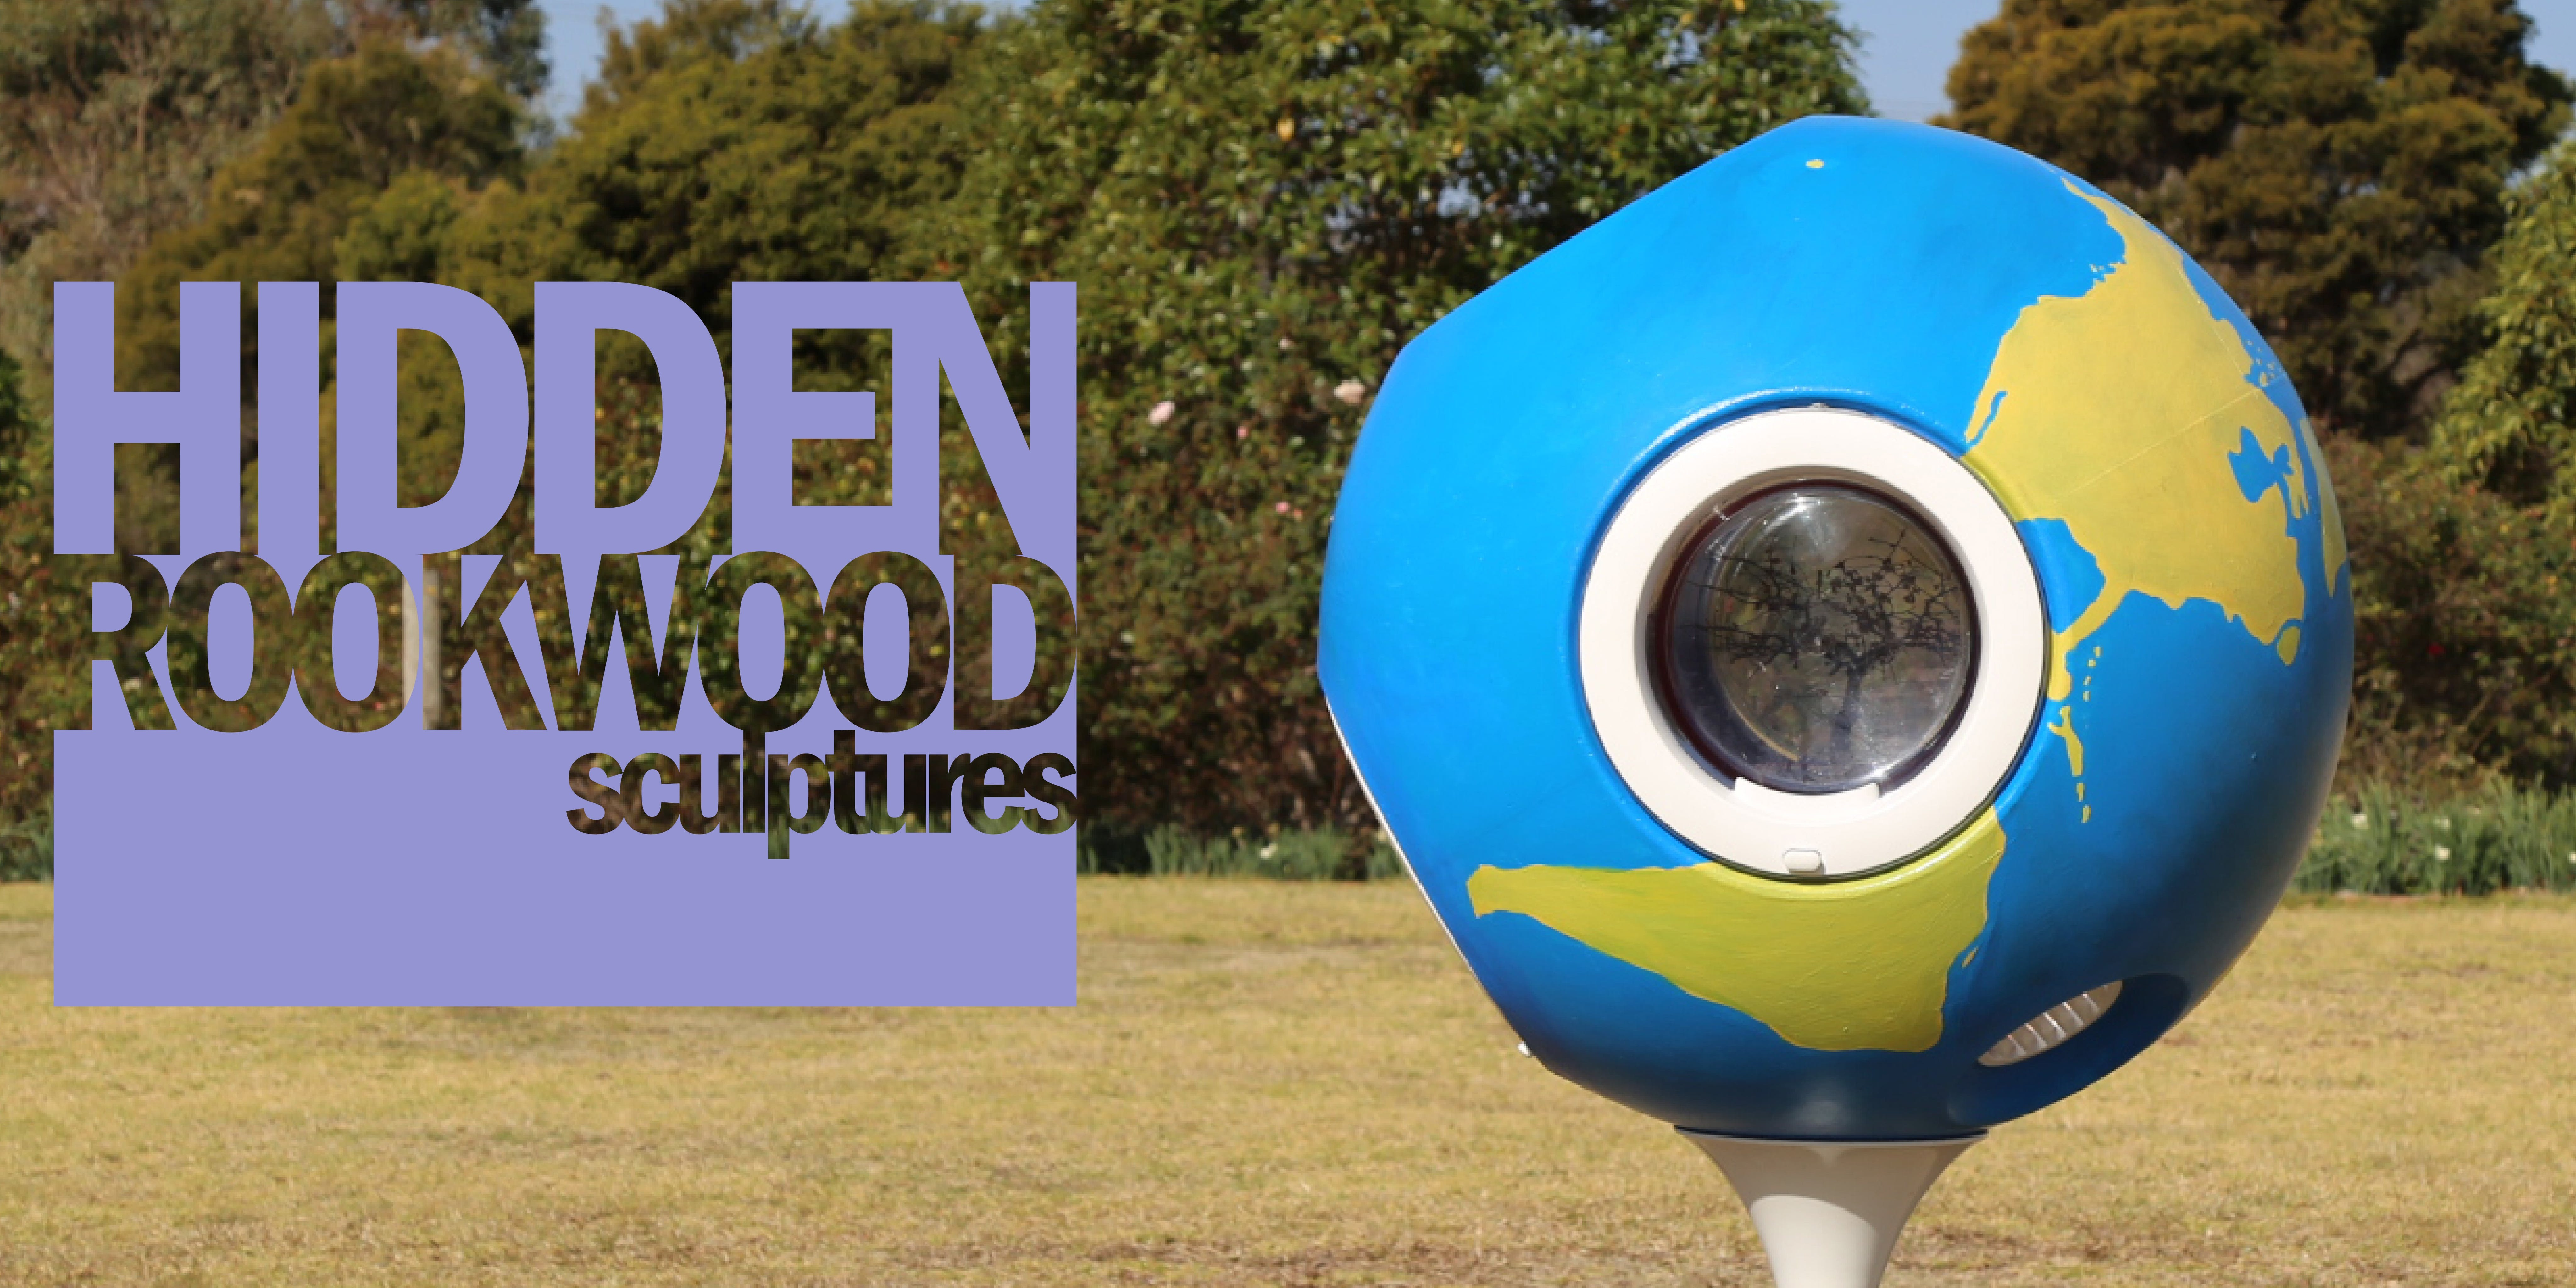 Hidden Rookwood Sculptures